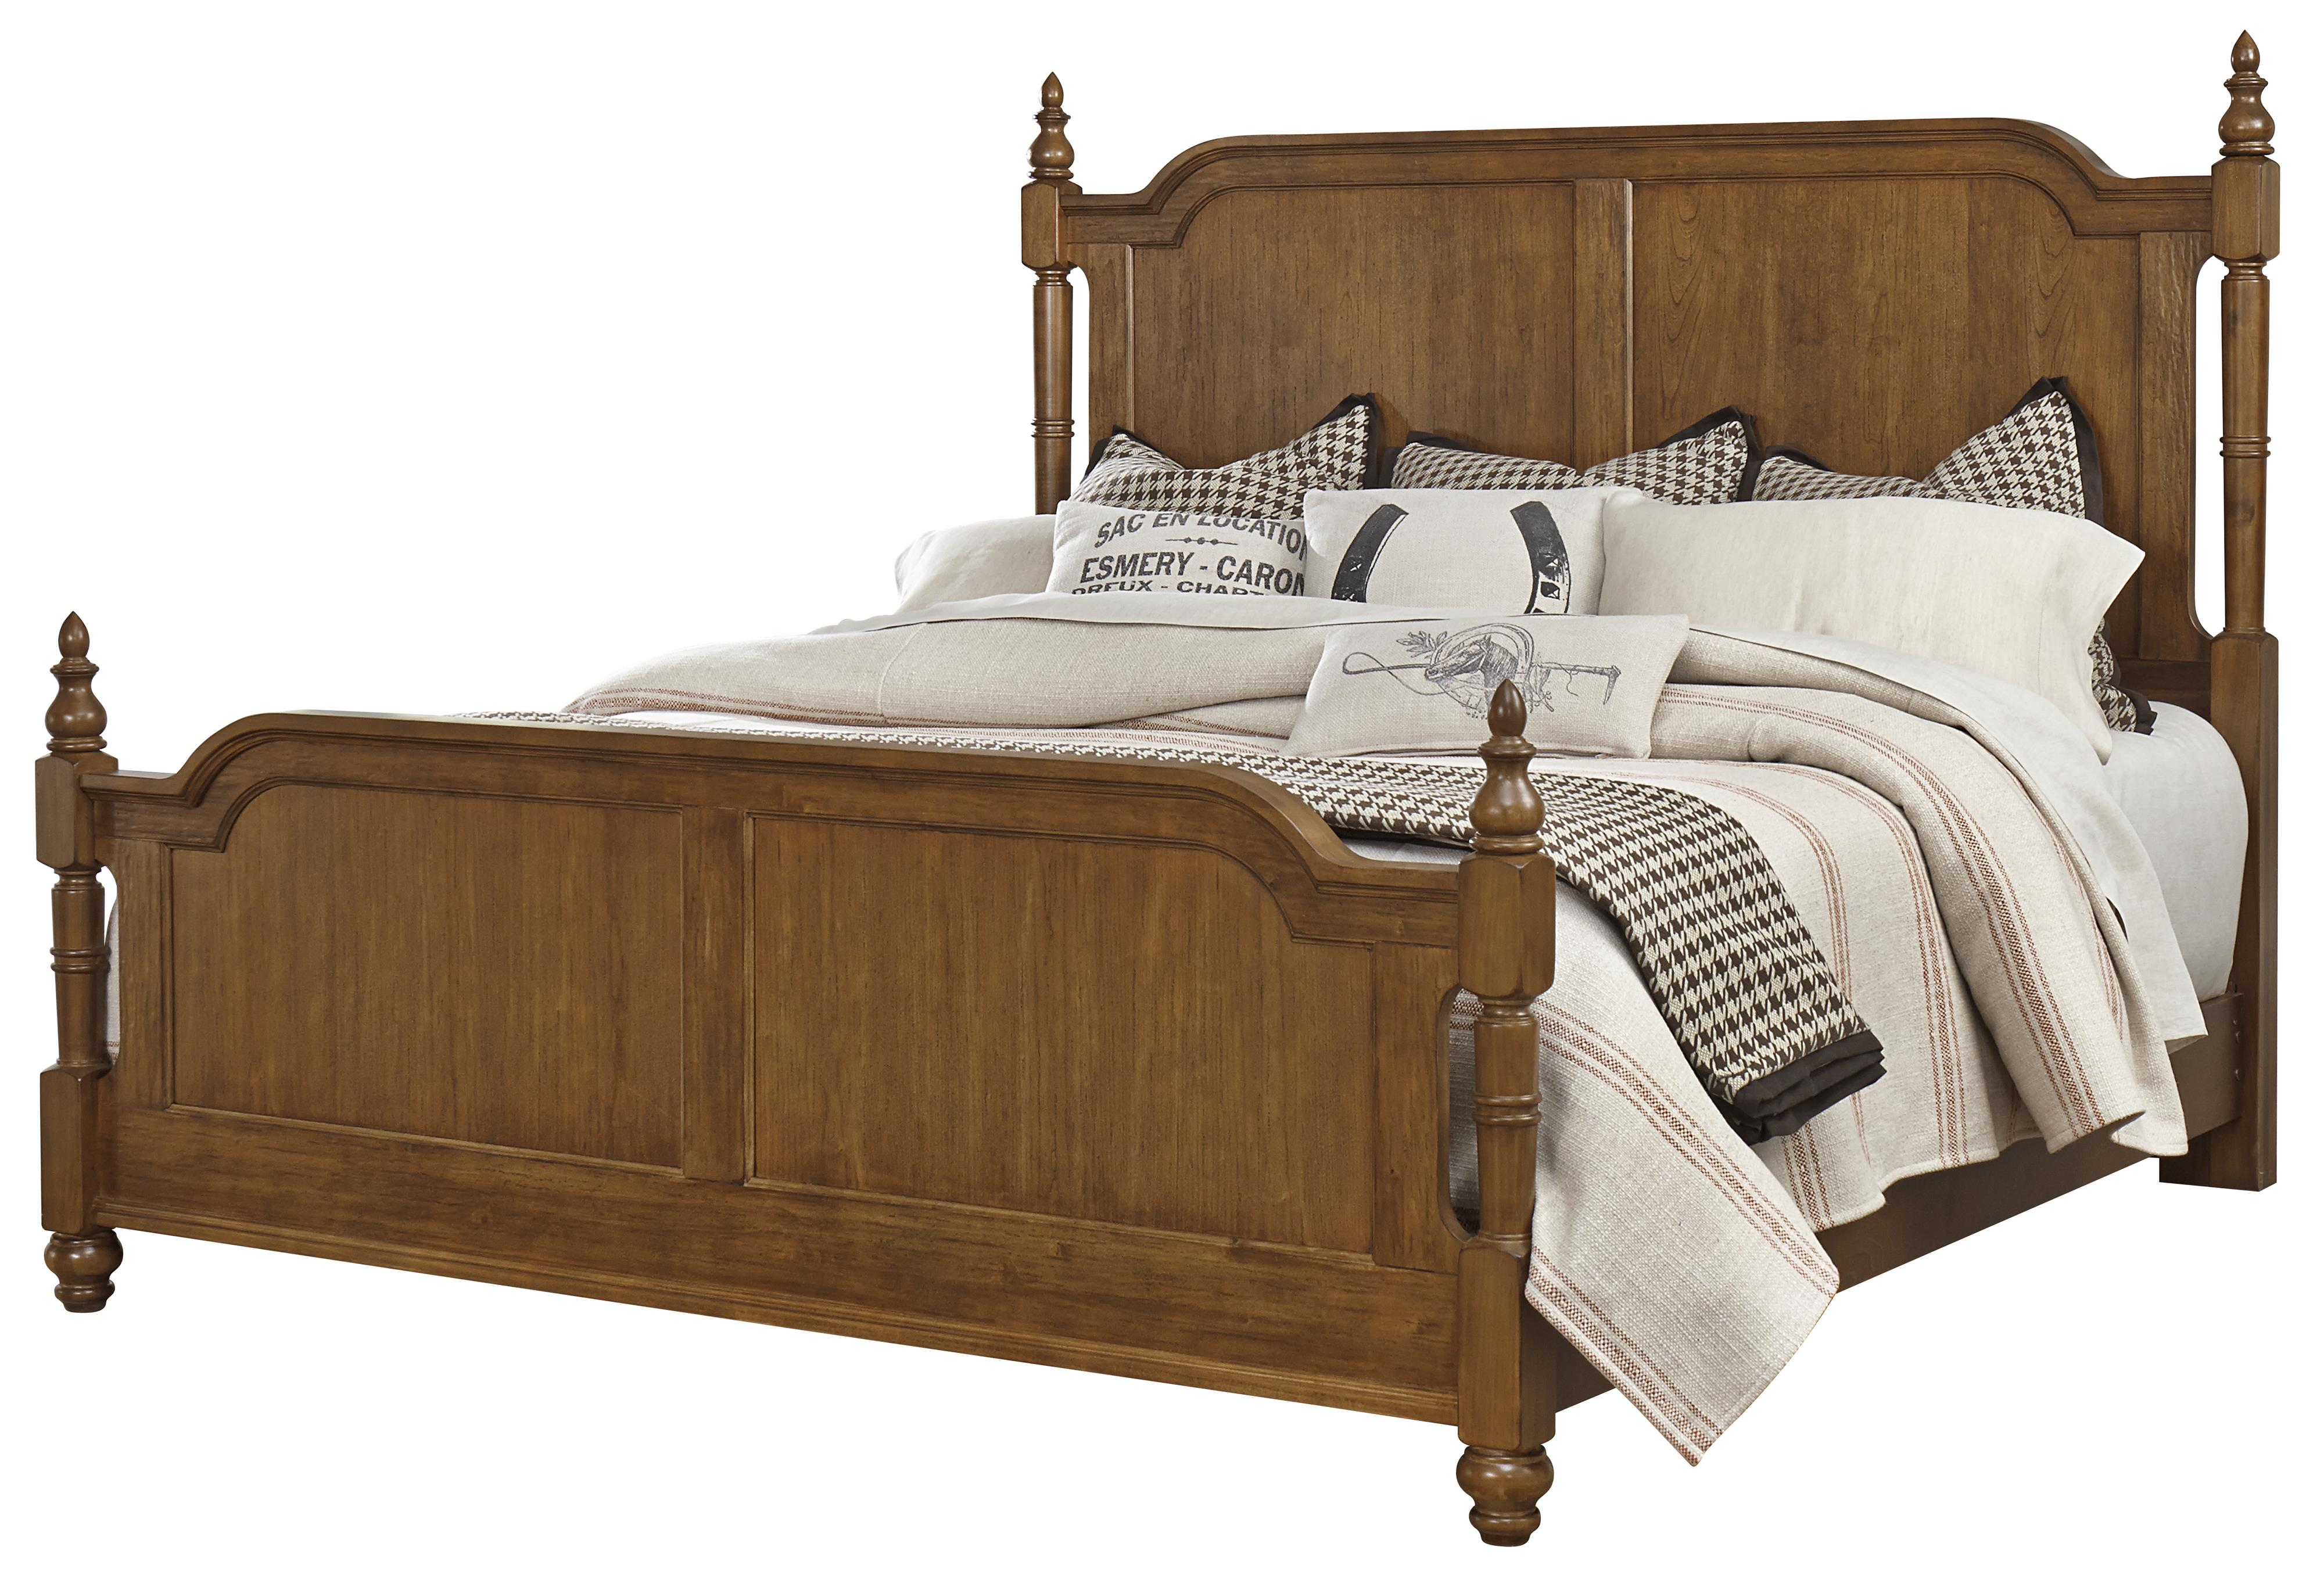 Vaughan Bassett Arrendelle King Poster Bed - Item Number: 440-669+966+922+MS1